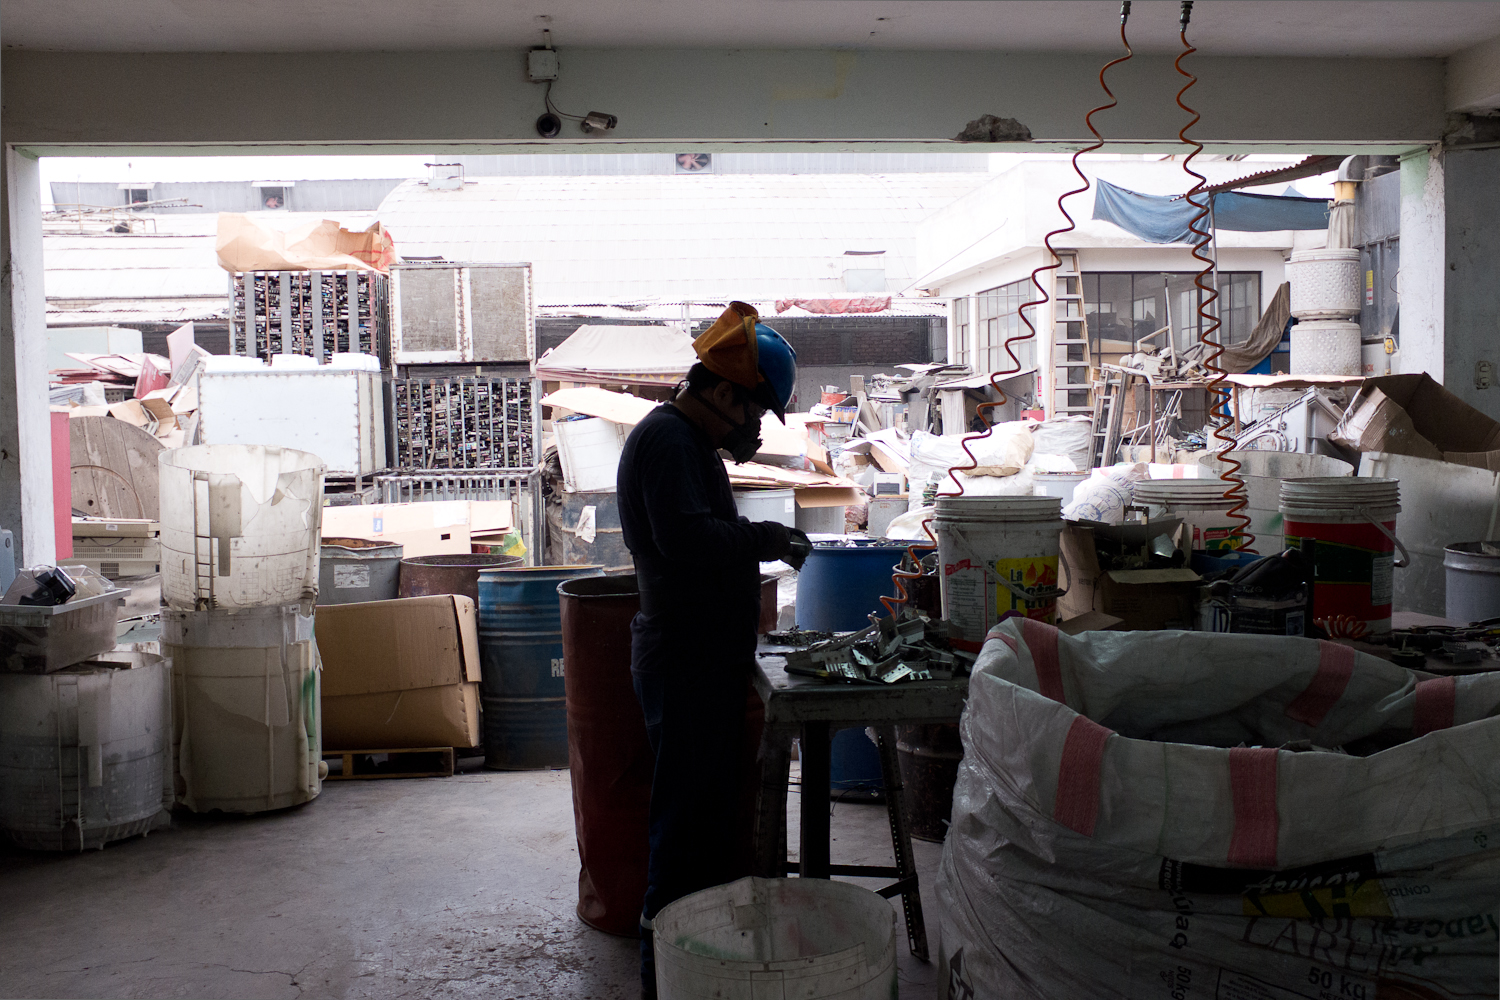 A worker dismantles electronic products under safe conditions. Under its contractual obligations with commercial customers, this formal recycling facilty does not refurbish electronics or salvage parts for reuse. While some metals are sold to local markets, components such as circuit boards, copper cables, and plastics are baled and prepared for export for further processing.The emergence of the formal sector potentially gives rise to competition with the informal sector for the same materials. Understanding the relative strengths of both entities and the benefits they both bring to society is important to allow for different forms of employment to flourish. In addition, pinpointing where vulnerablities exist in safely recycling these products-- such as informal CRT glass disposal-- and recognizing the socio-political dynamics that limit collaboration between the formal and informal sectors is critical for forging a system where both can thrive. Finally, given technological constraints among Peru's formal recyclers, stakeholders should look to shore up certification of best recycling practices in key regions, such as Asia and the United States, so that all countries who must export material have access to sound end-of-life processing methods that are transparent for all, or build up local recycling capacities through technology transfers.